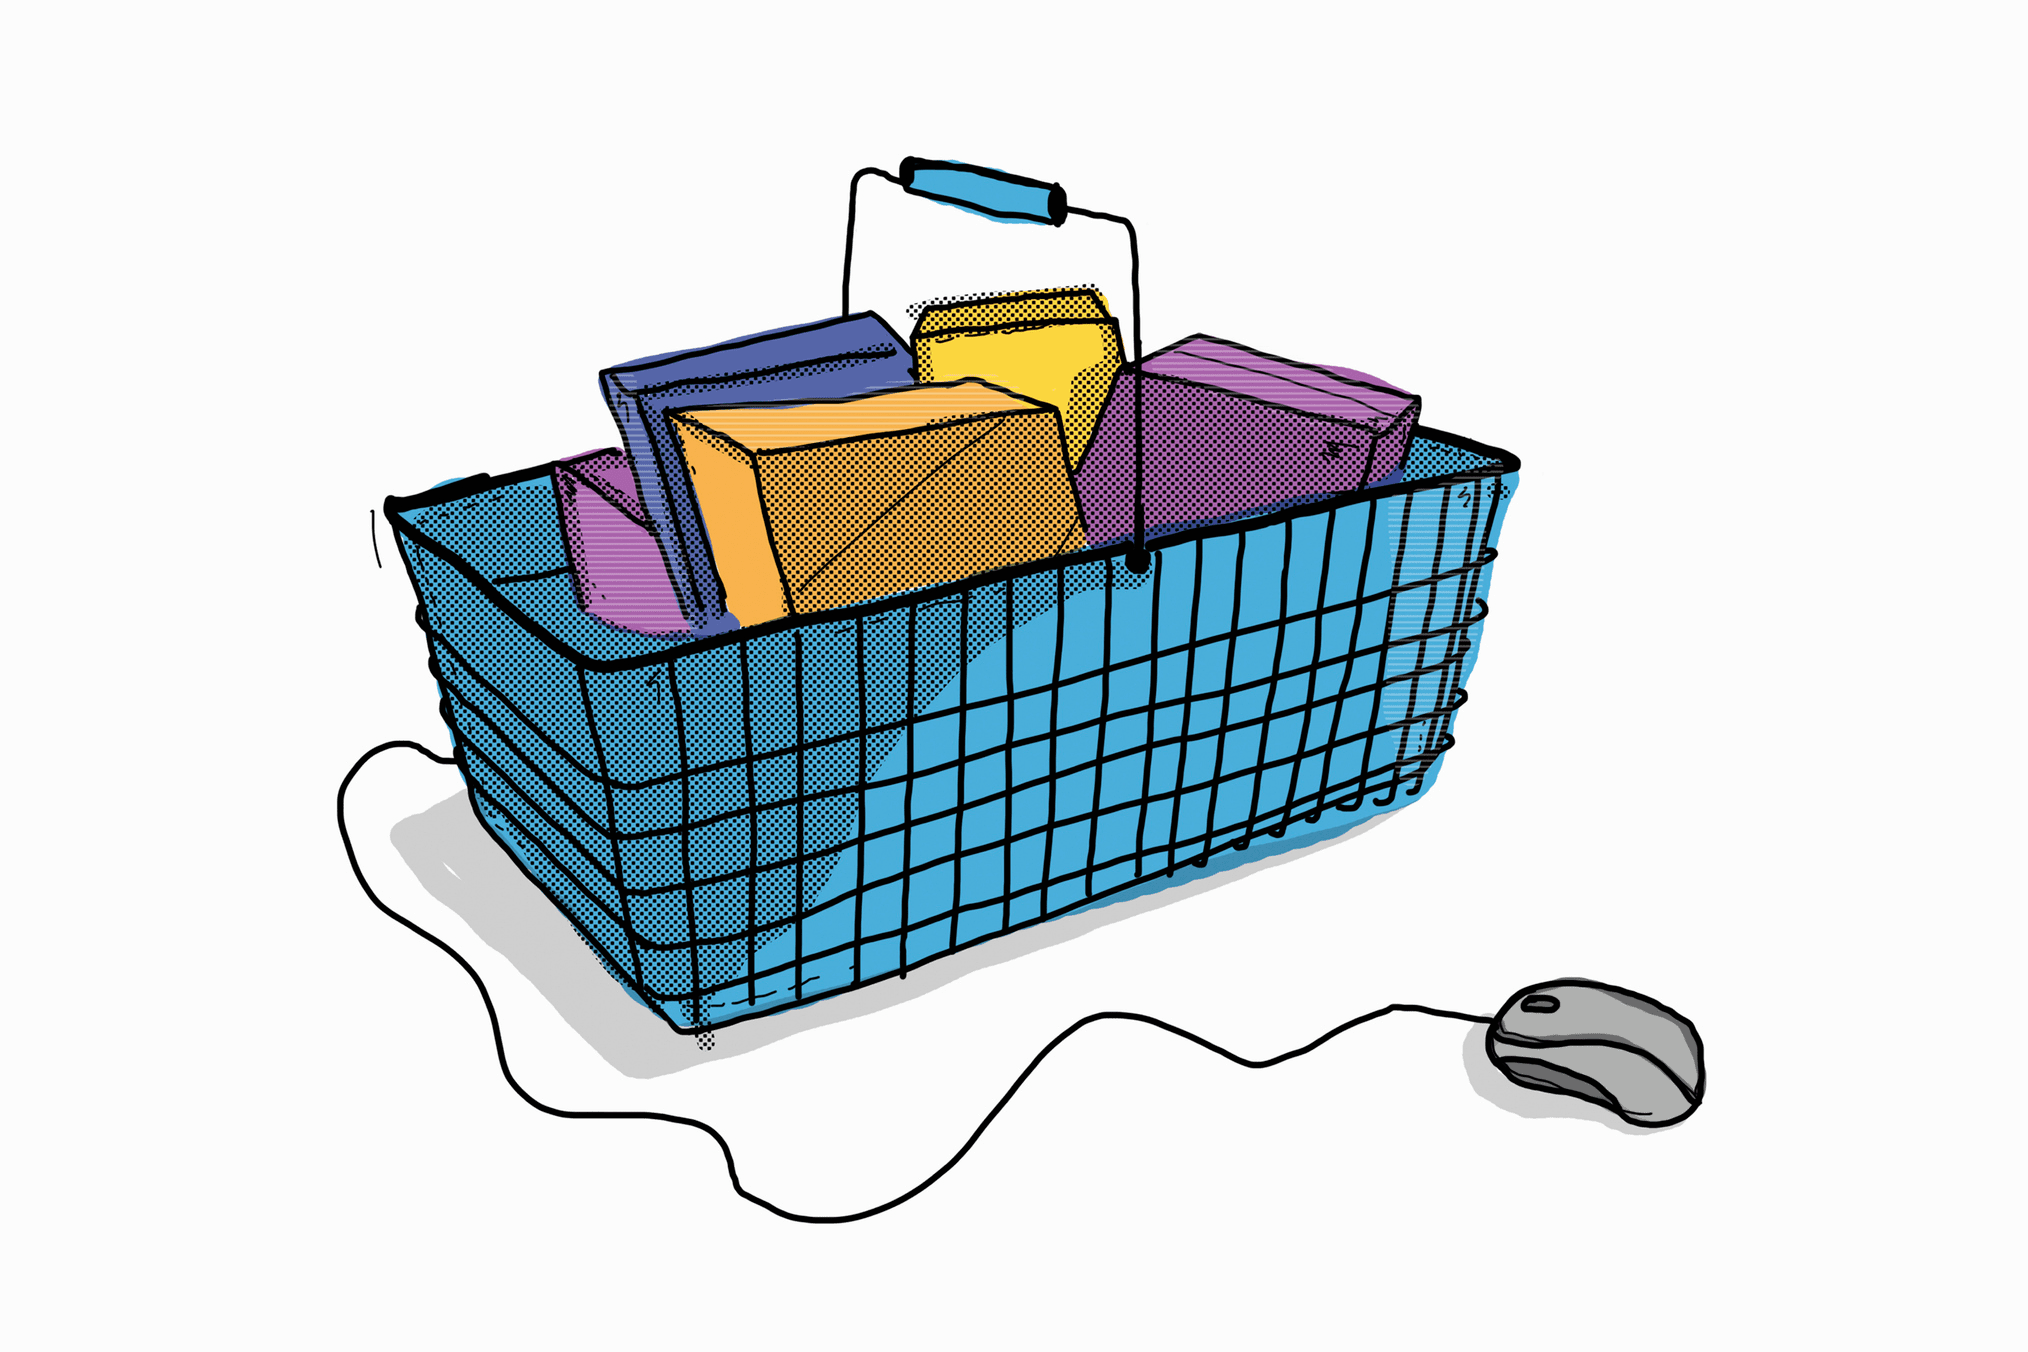 Computer mouse attached to a basket of items